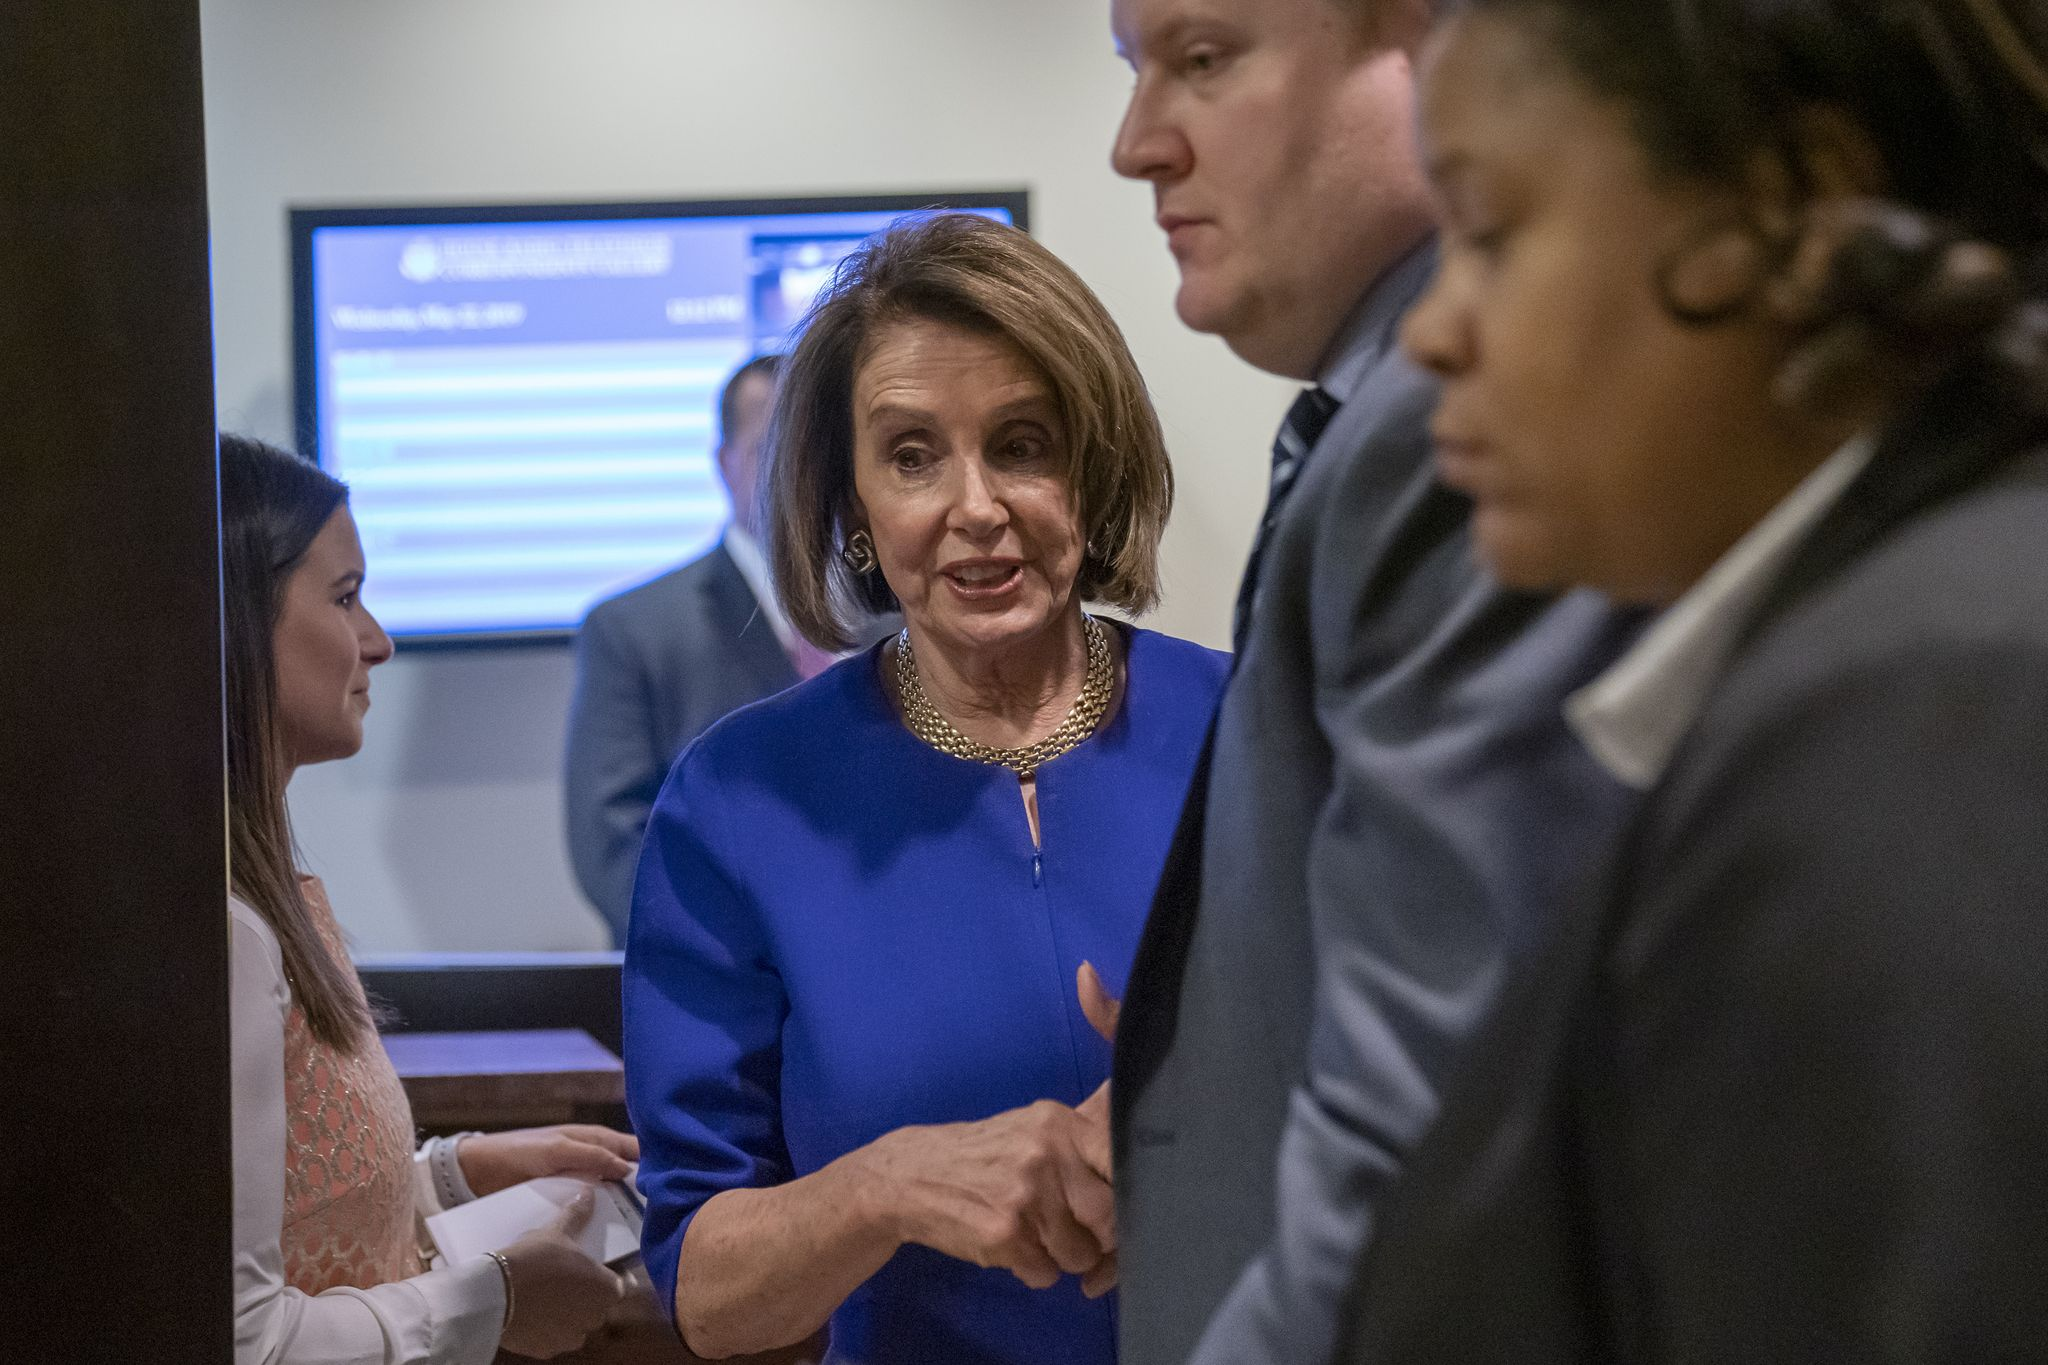 Nancy Pelosi's 'cover-up' accusation upsets delicate balance with White House